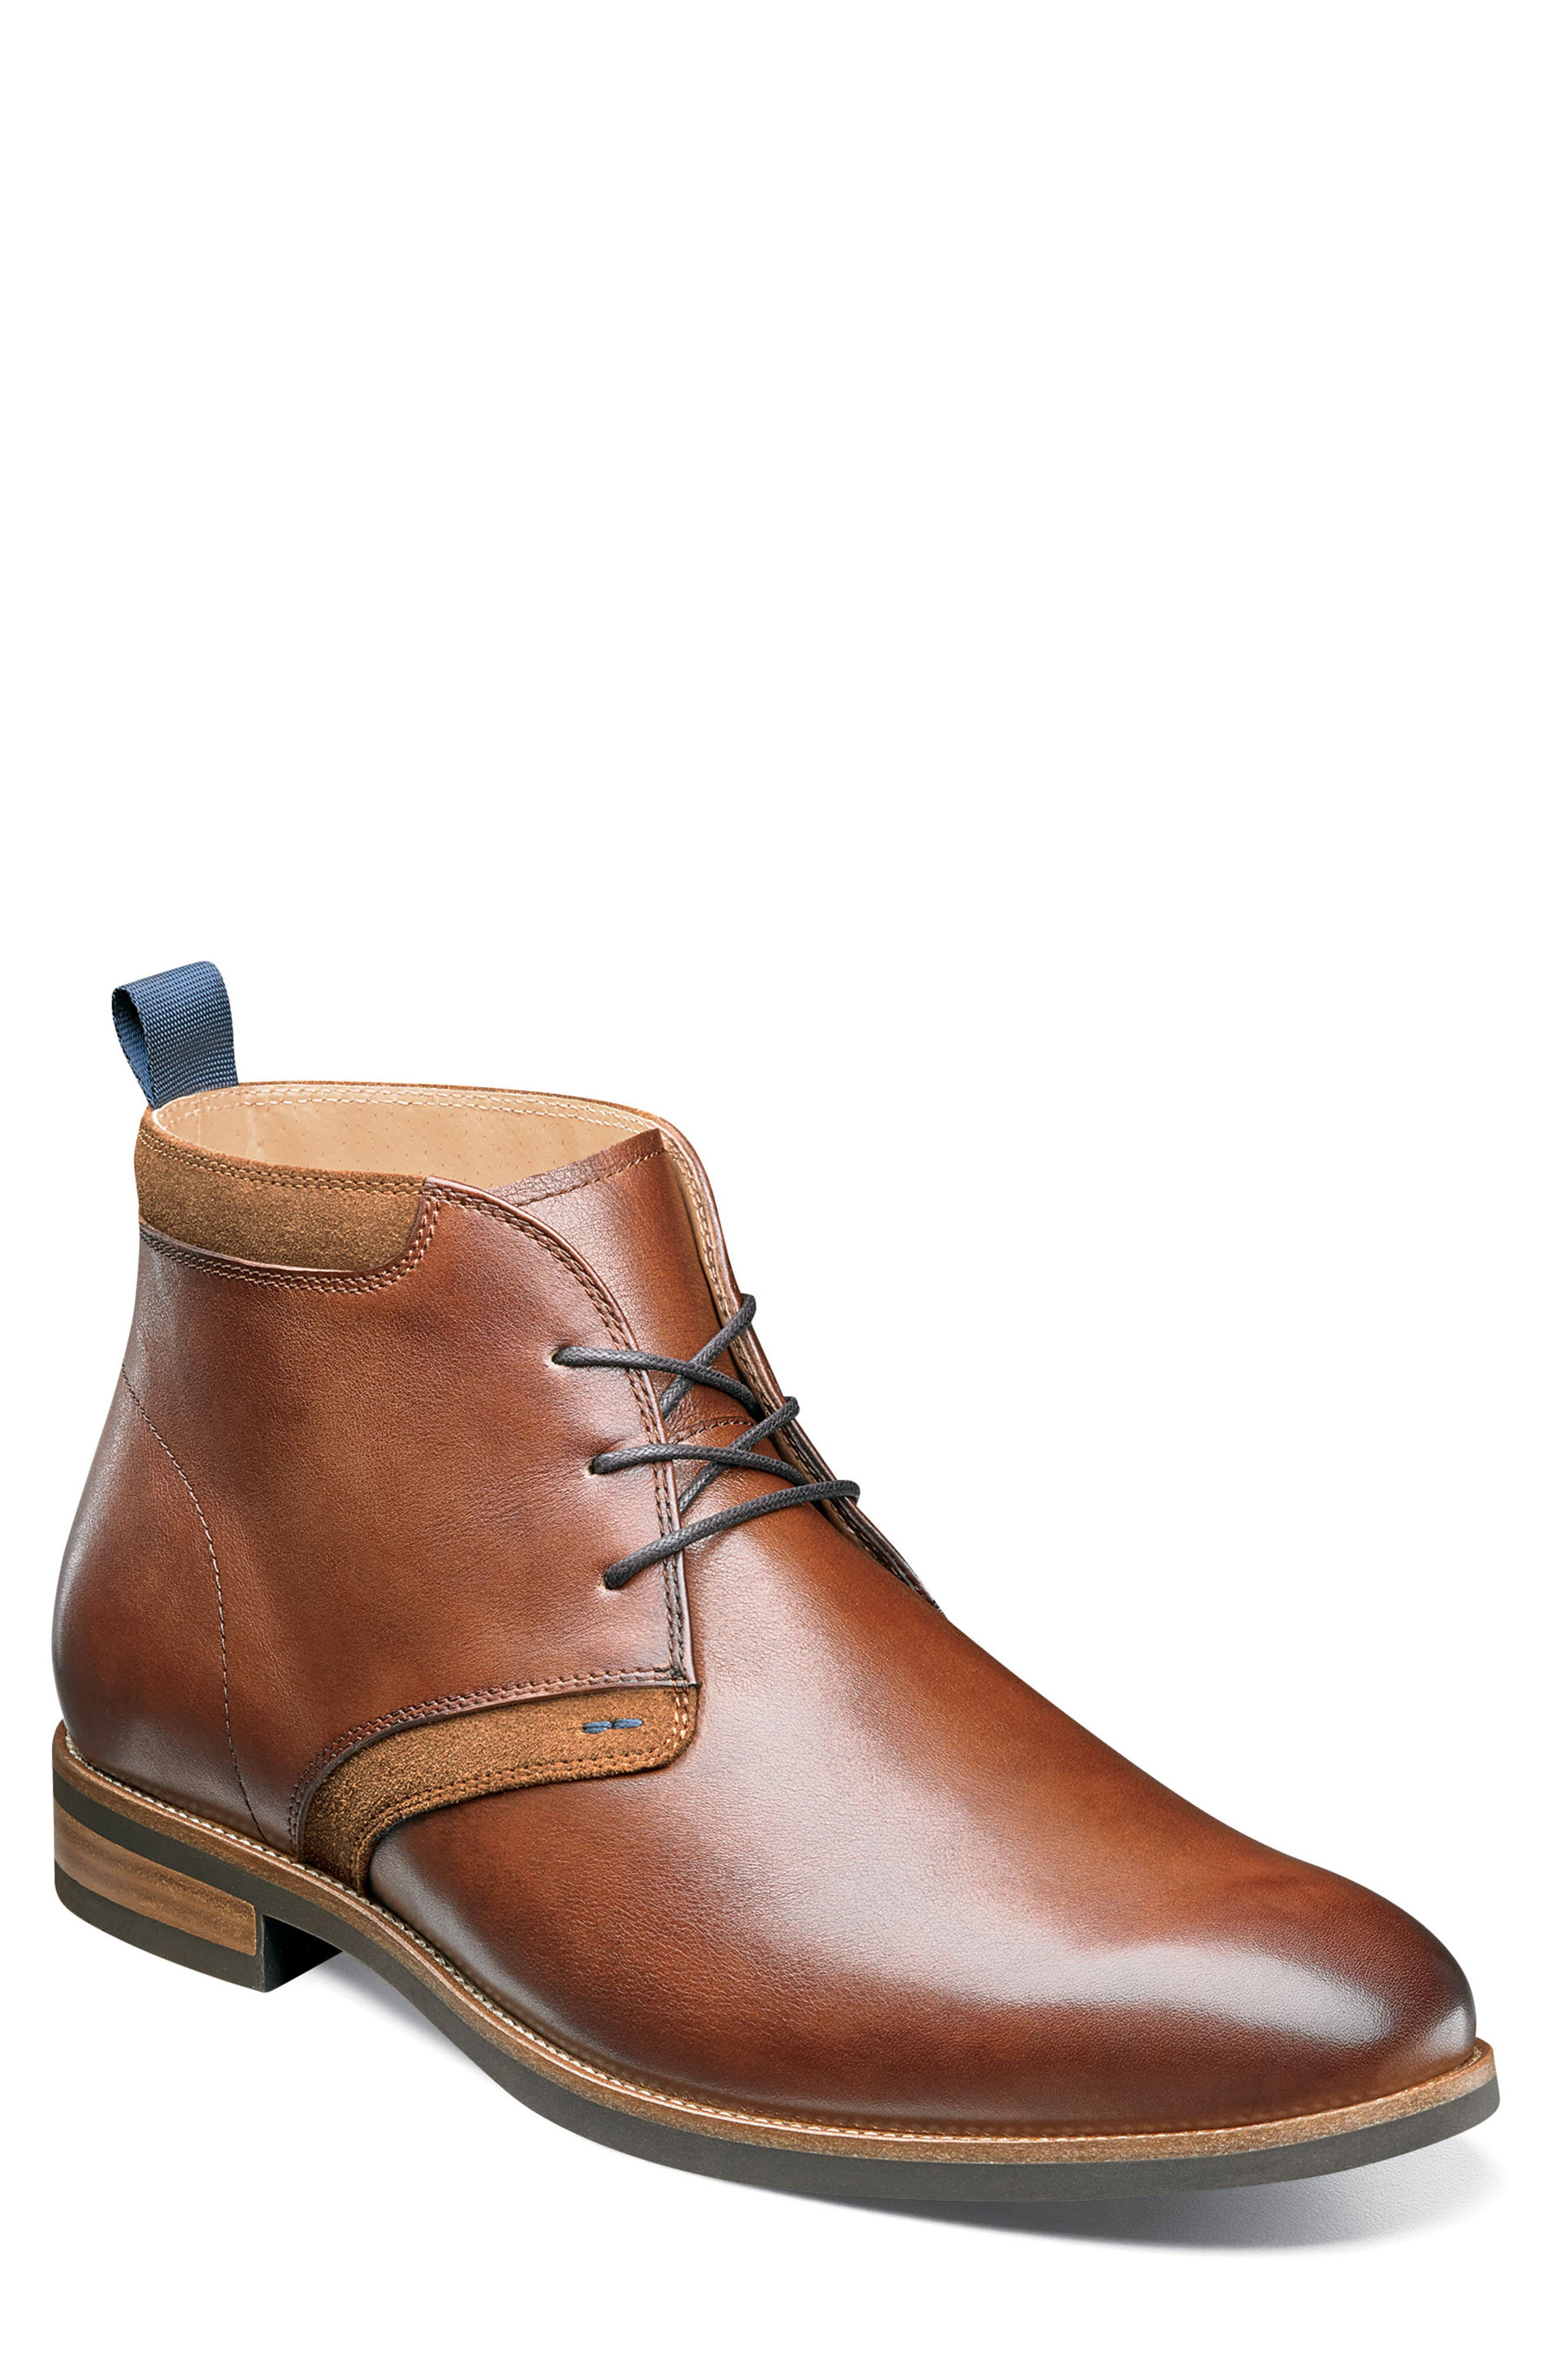 FLORSHEIM, Uptown Chukka Boot, Main thumbnail 1, color, COGNAC LEATHER